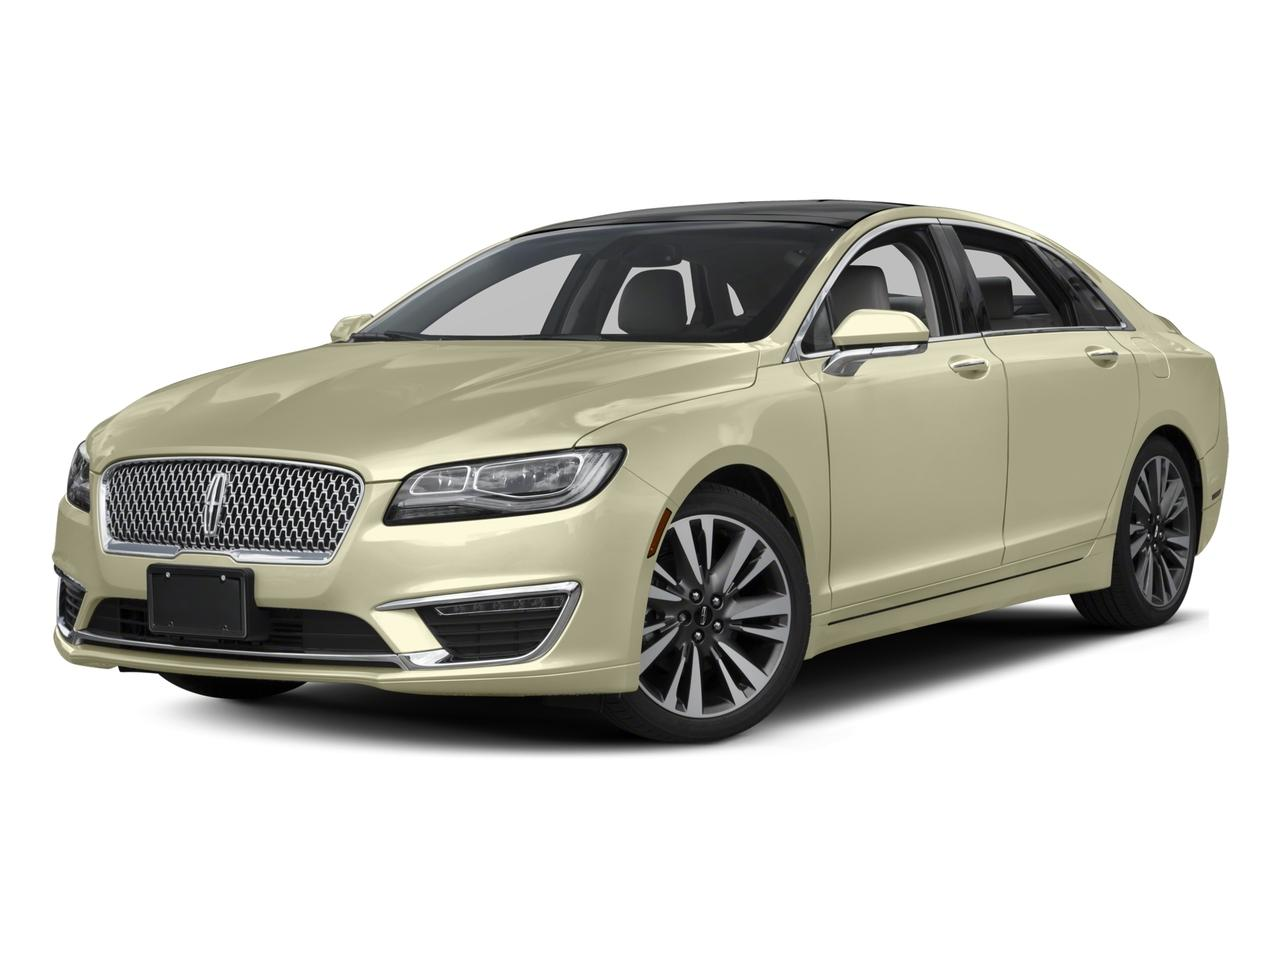 2017 LINCOLN MKZ Vehicle Photo in Grapevine, TX 76051